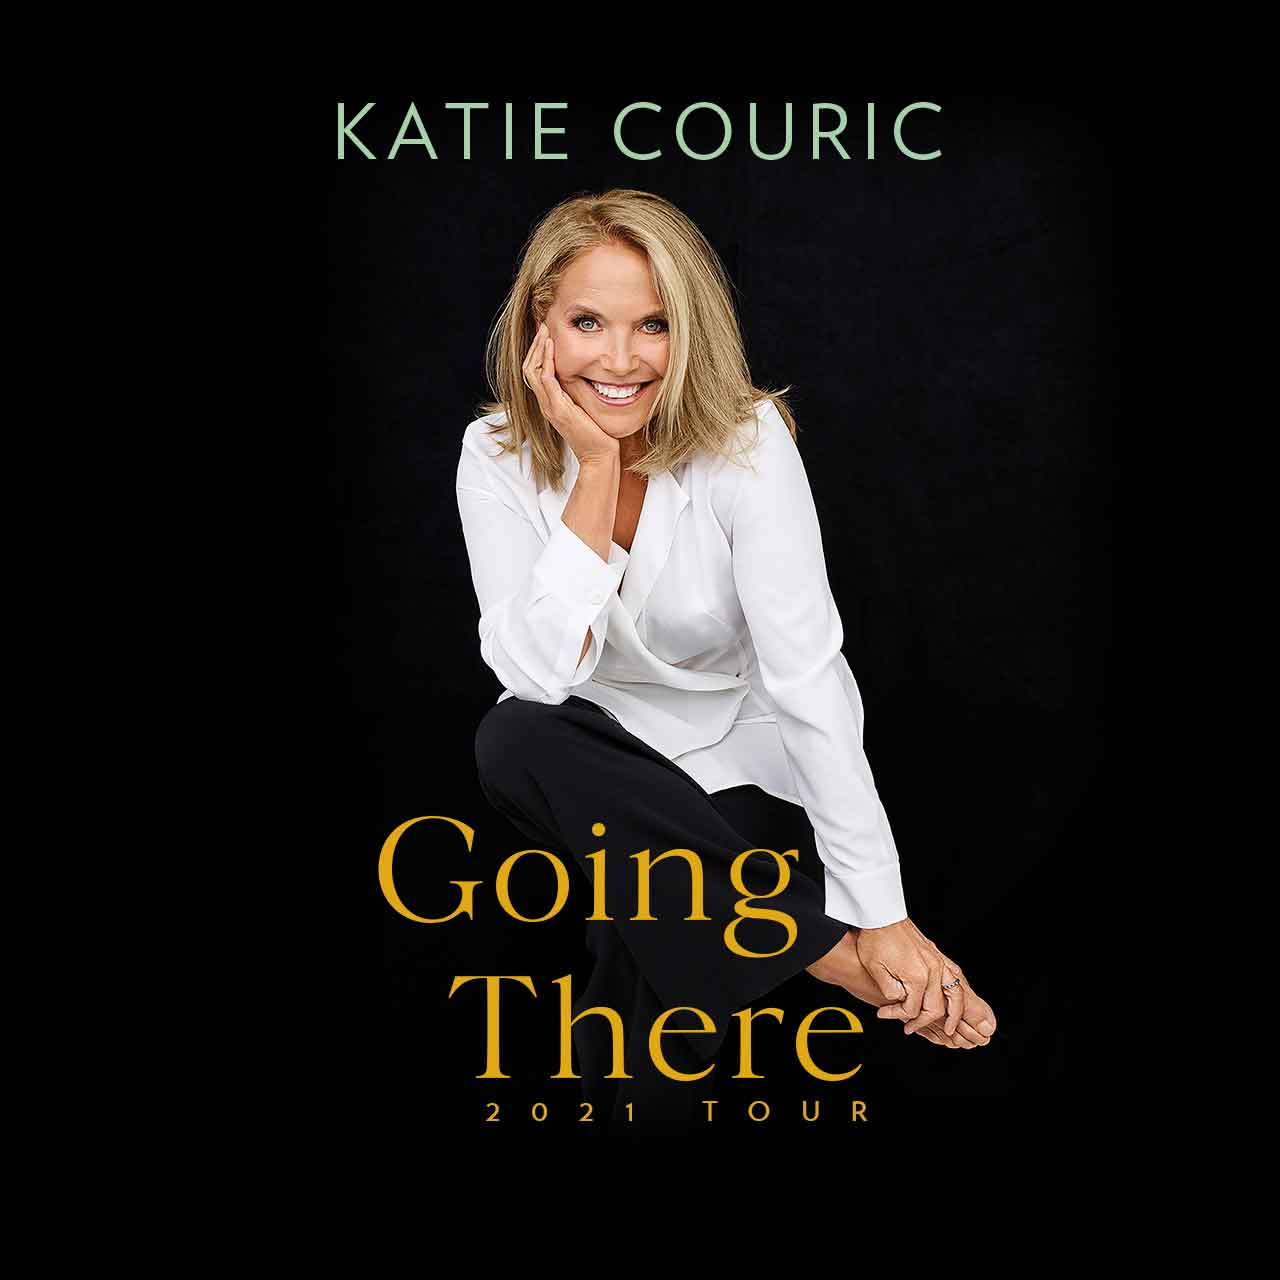 Going There 2021 Tour